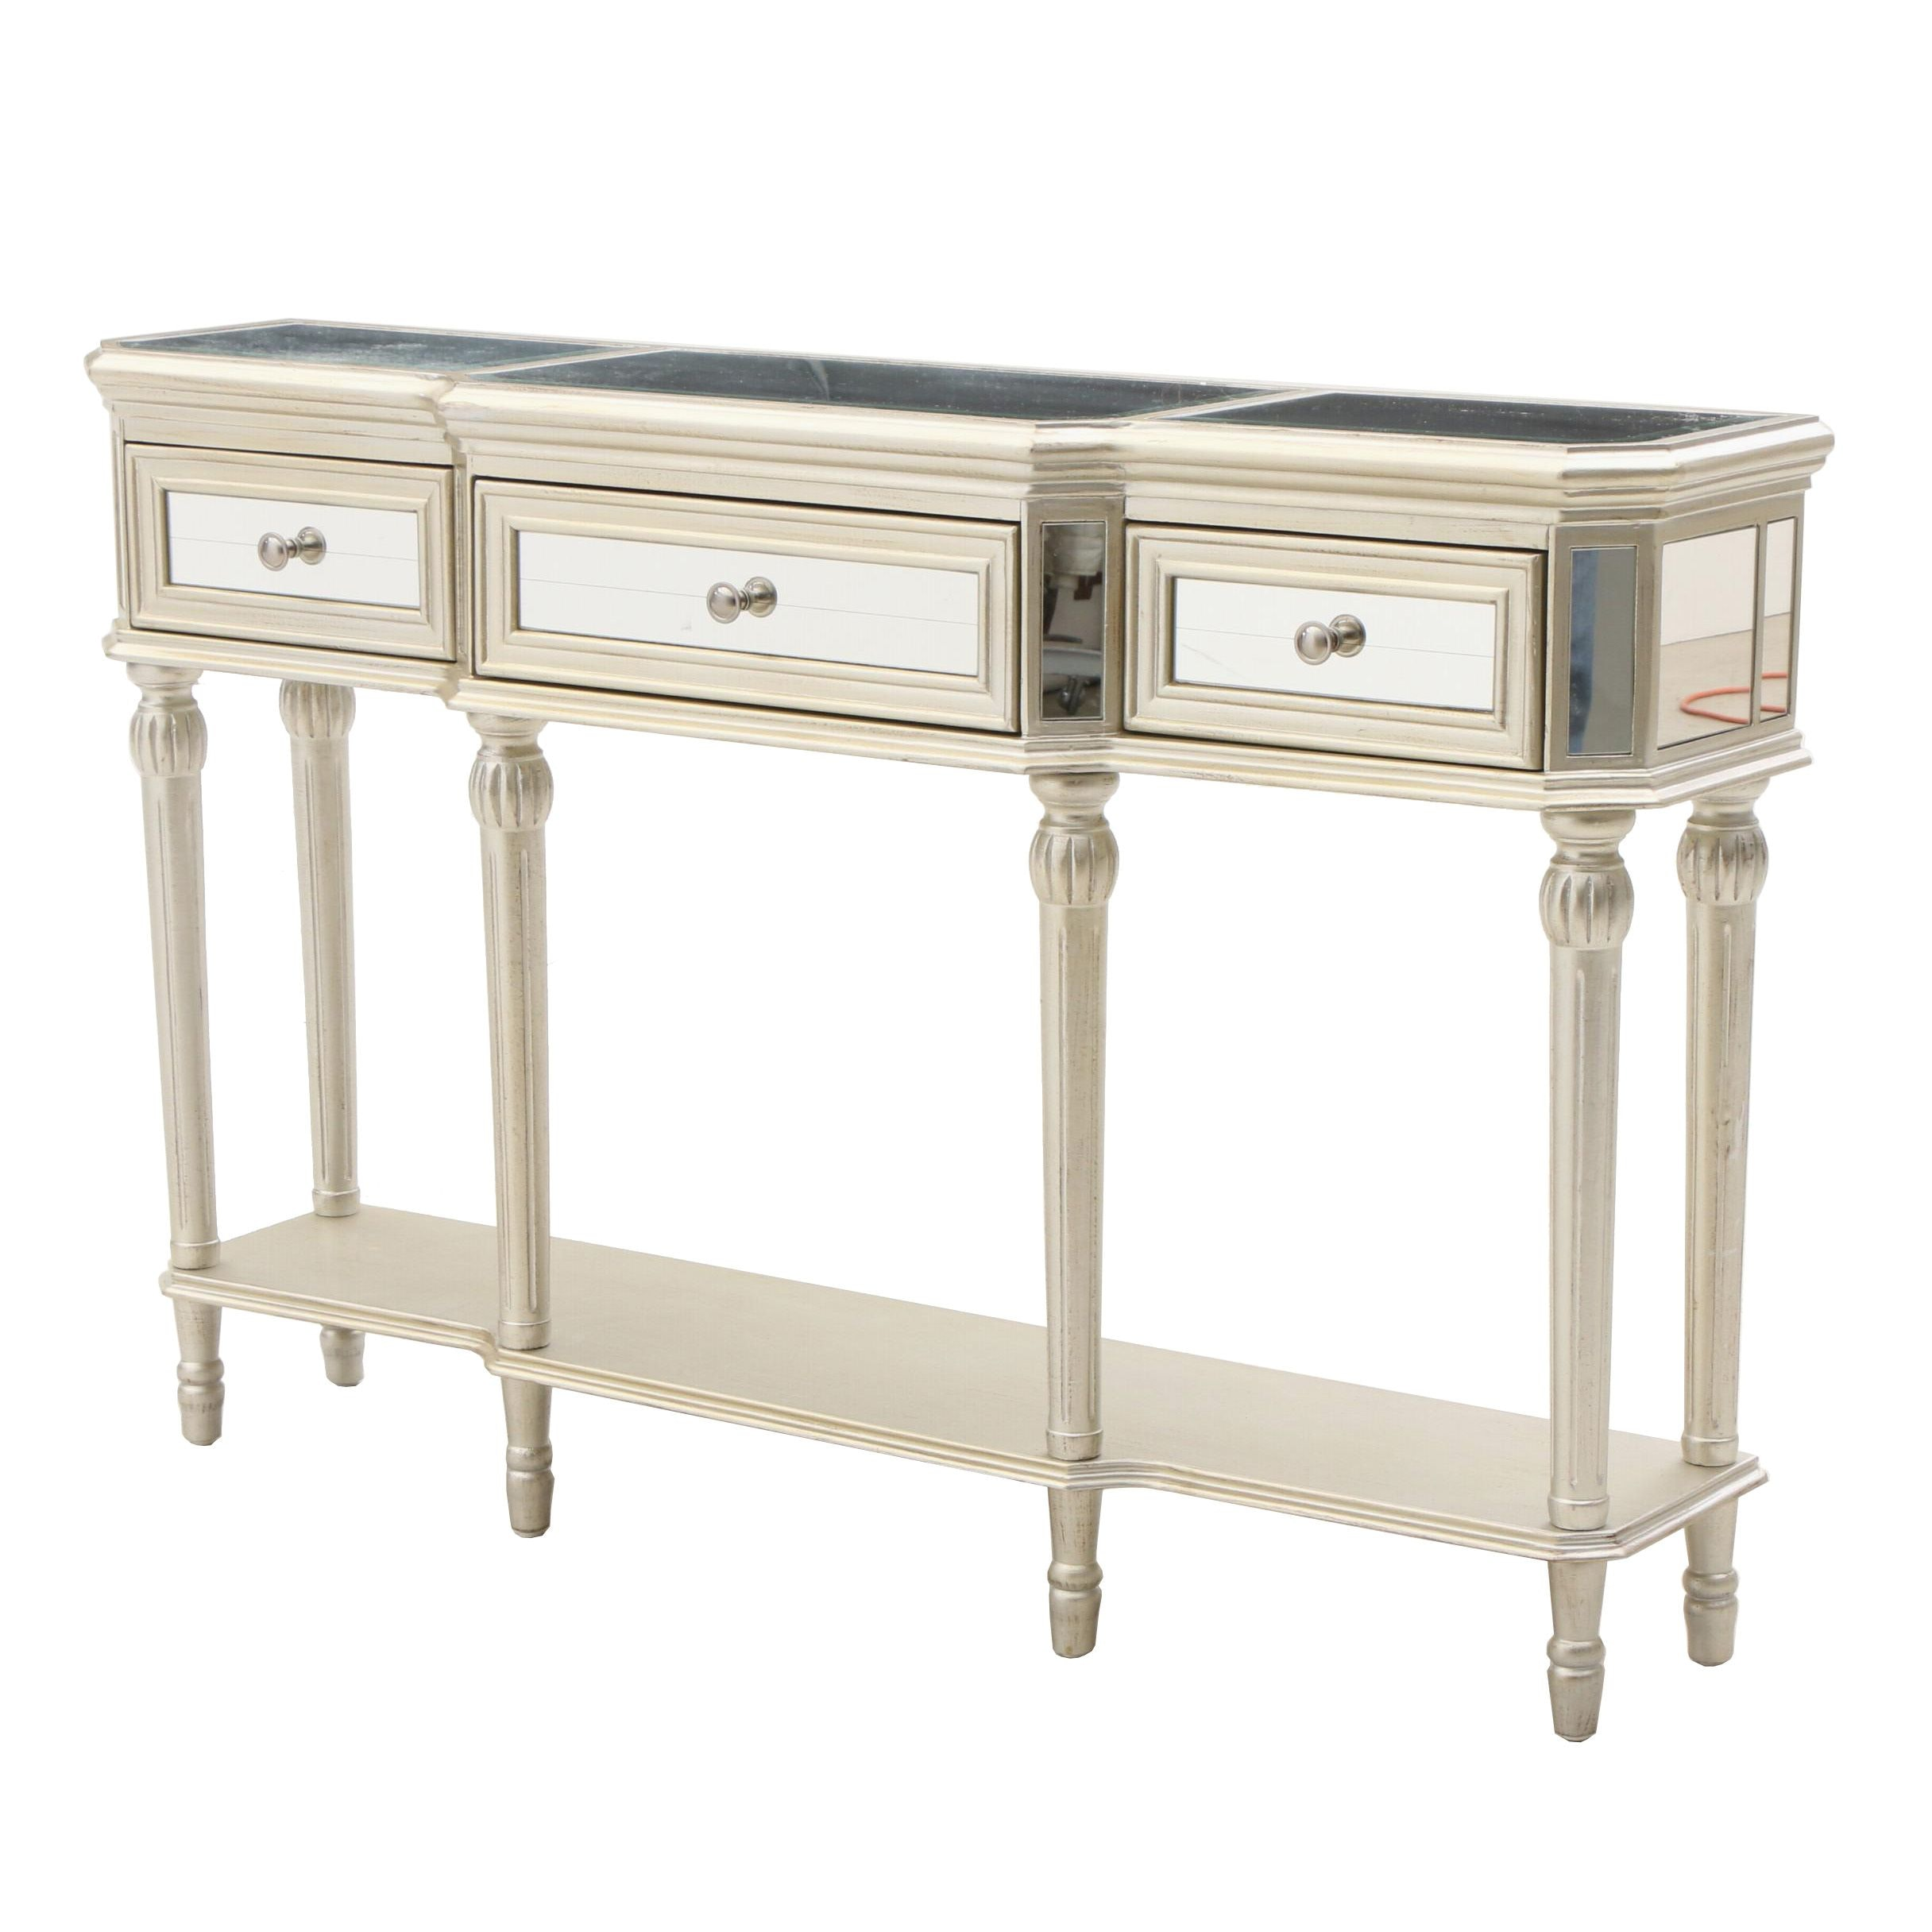 Contemporary Mirrored and Silver Paint Finish Console Table